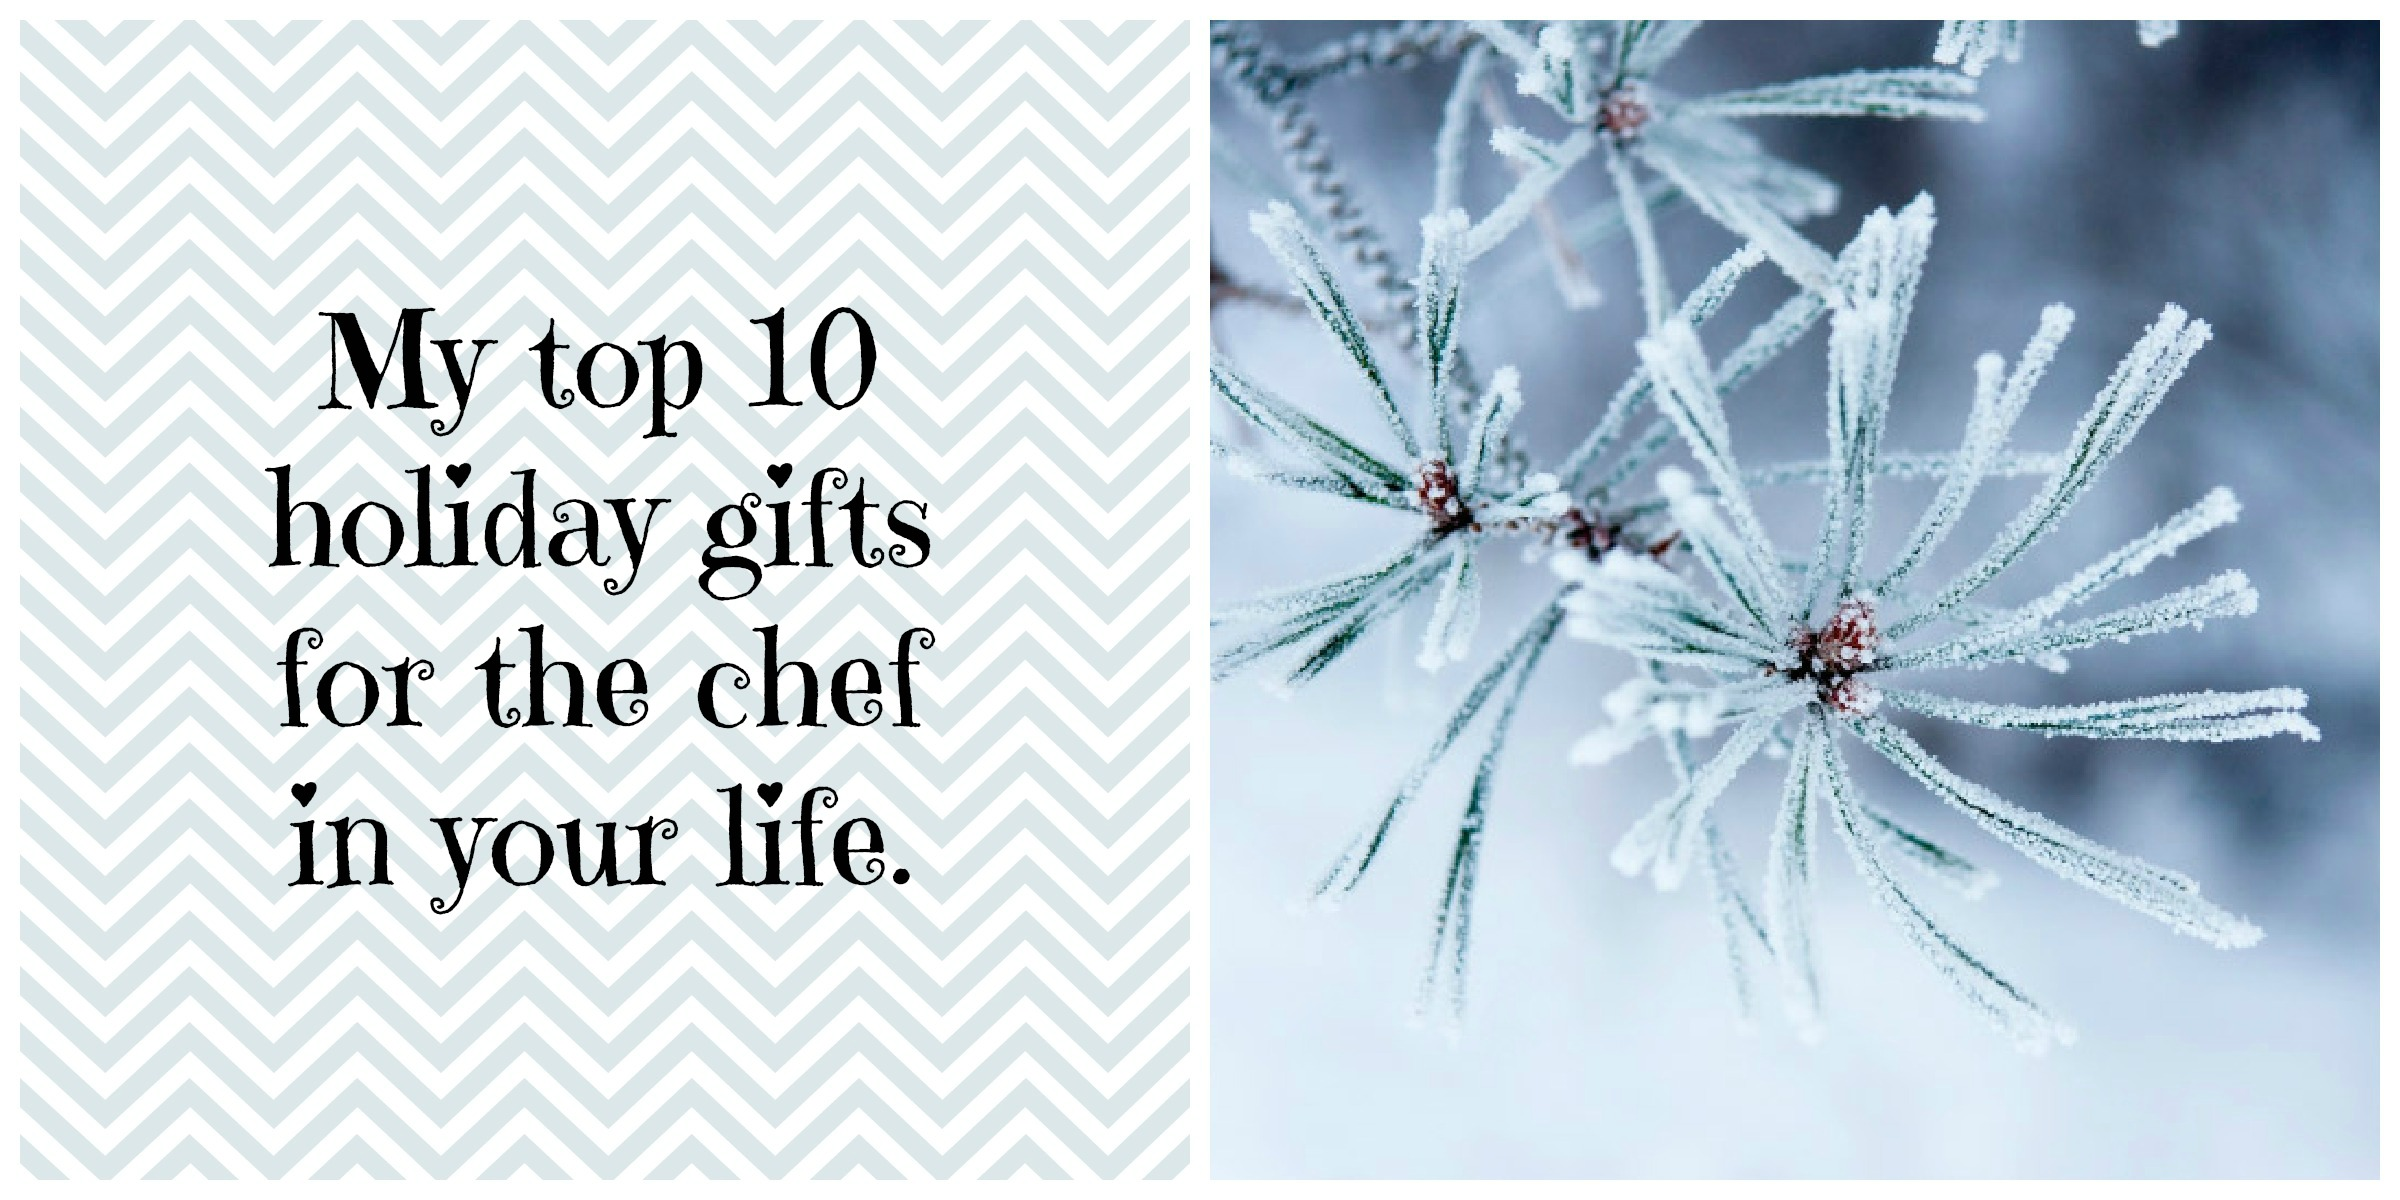 My Top 10 Holiday Gifts for the Chef in Your Life | Tasty Tuesday!